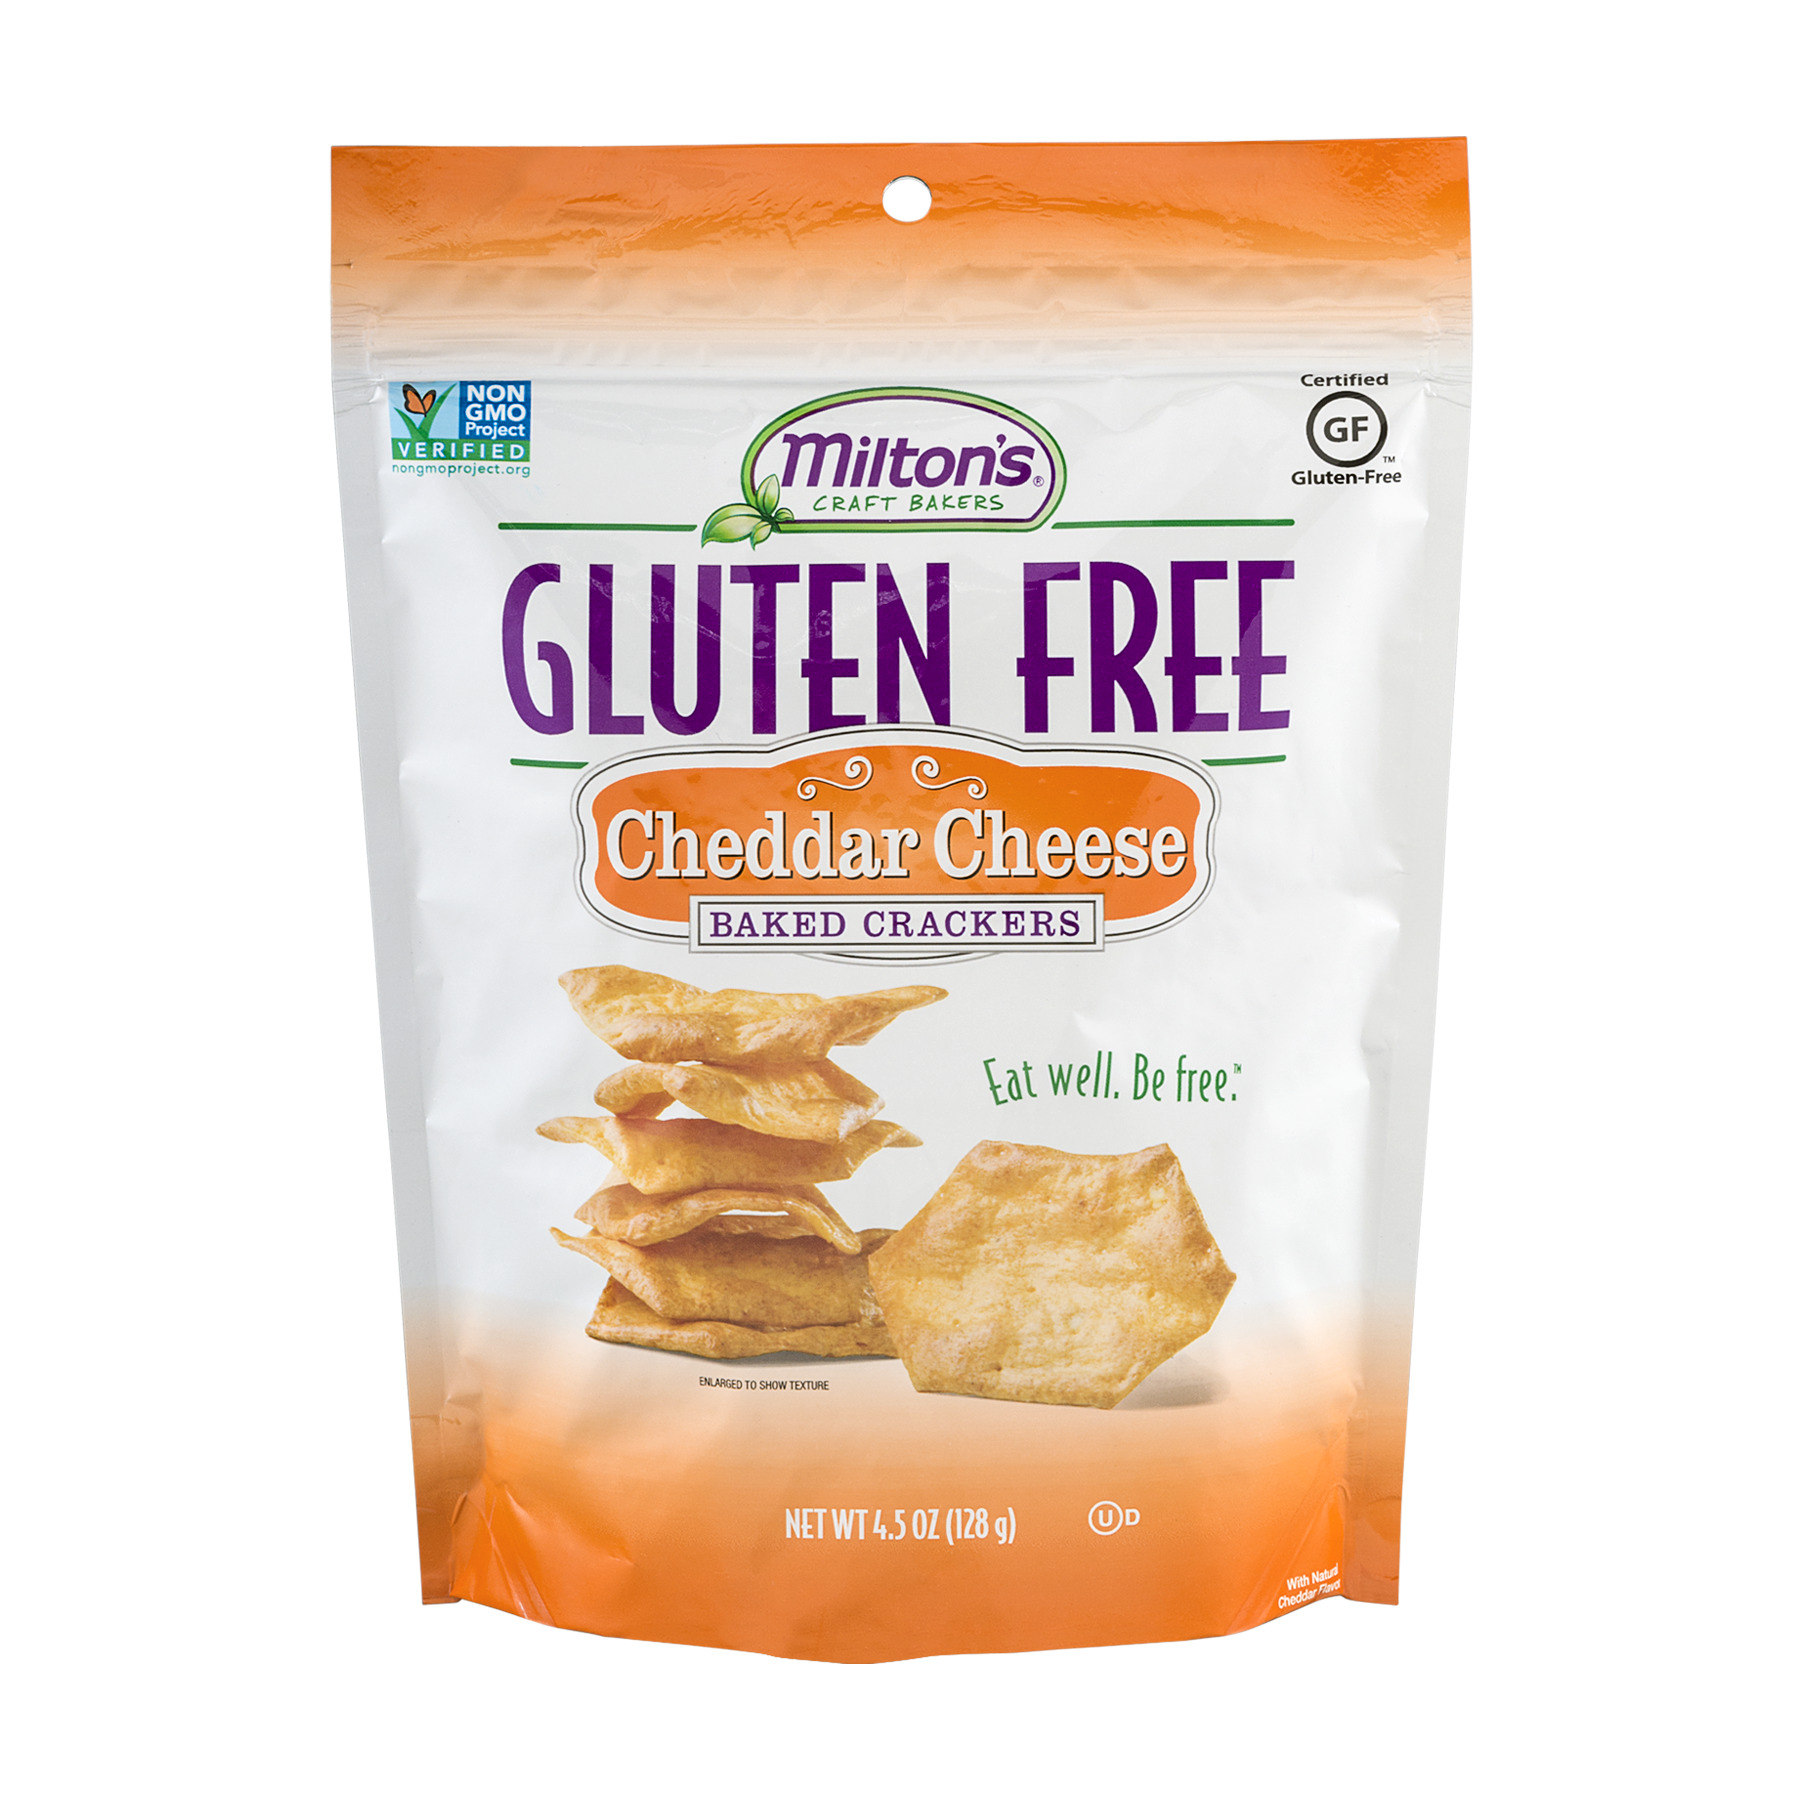 Milton's Craft Bakers Gluten-Free Baked Crackers, Cheddar Cheese, 4.5 Ounce []